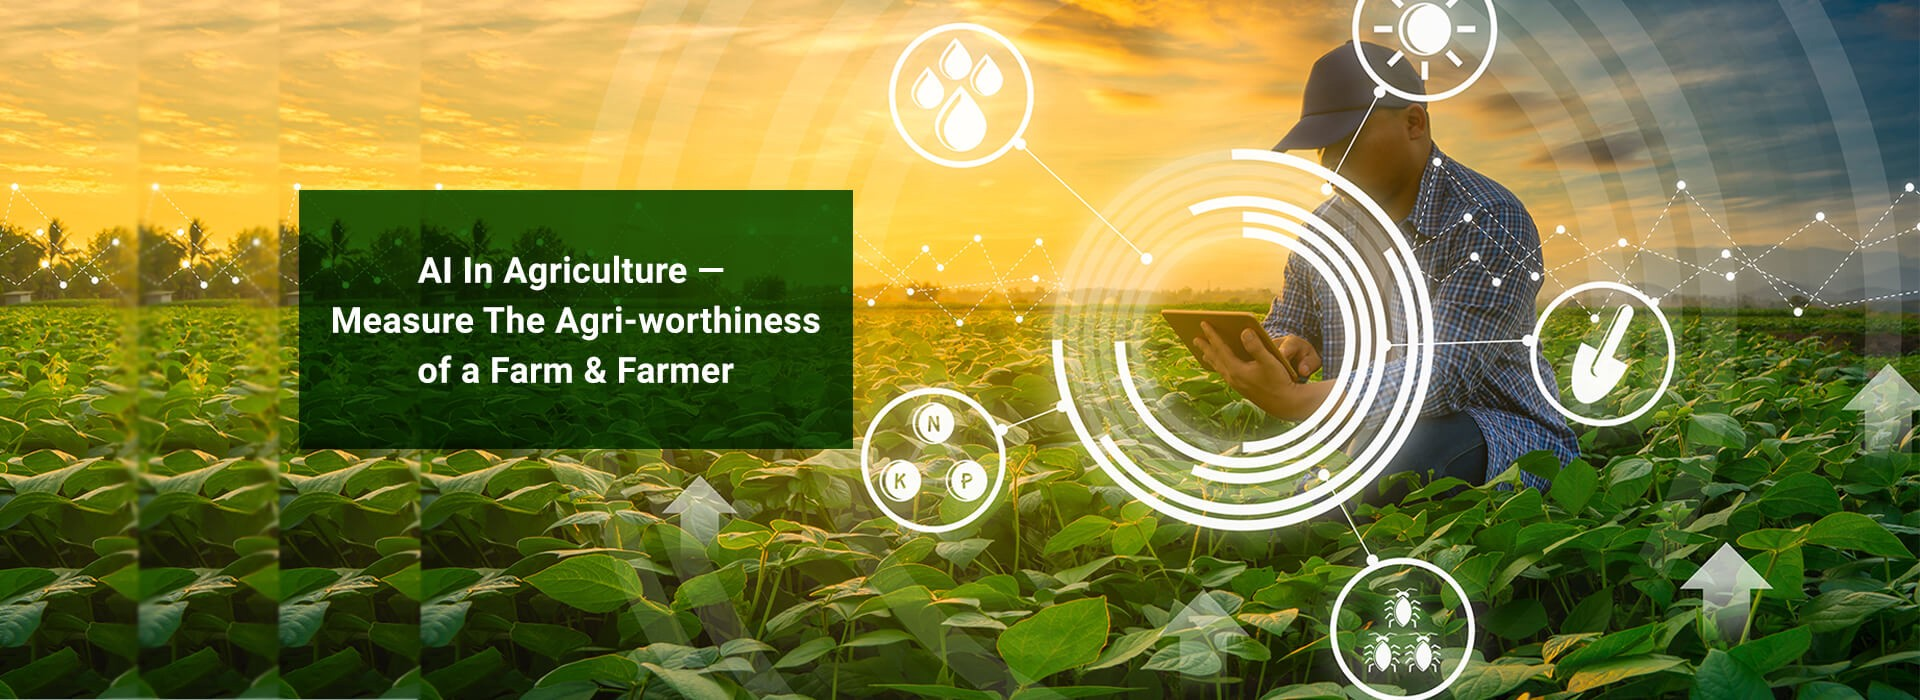 "Banner Image: ""AI In Agriculture — Measure The Agri-worthiness of a Farm & Farmer"""